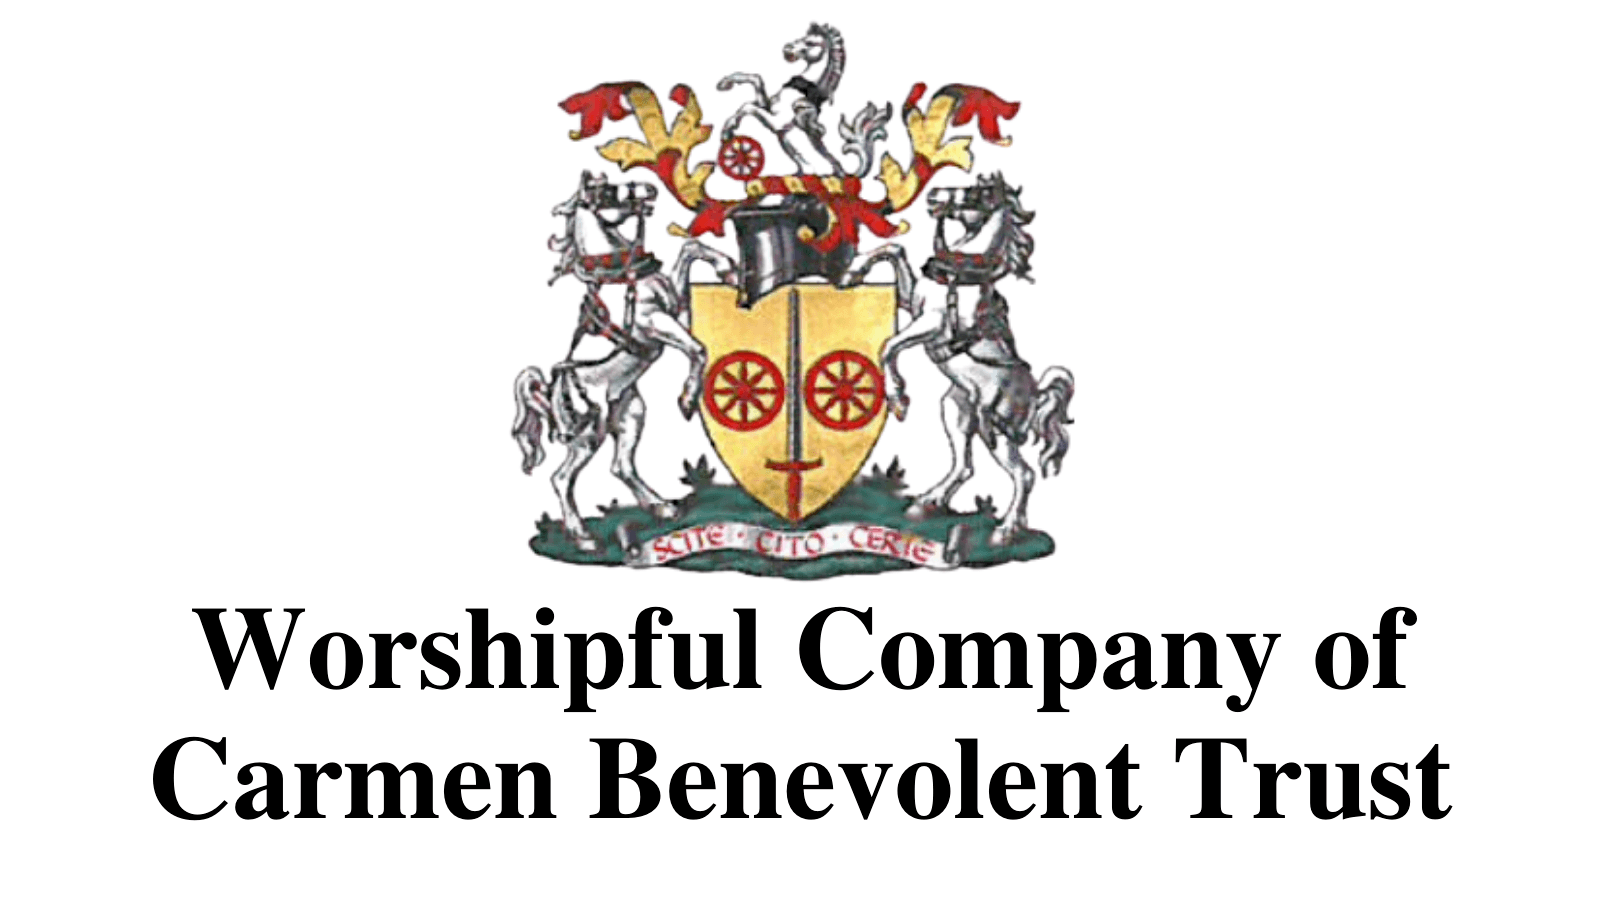 Copy of Worshipful Company of Carmen Benevolent Trust.png